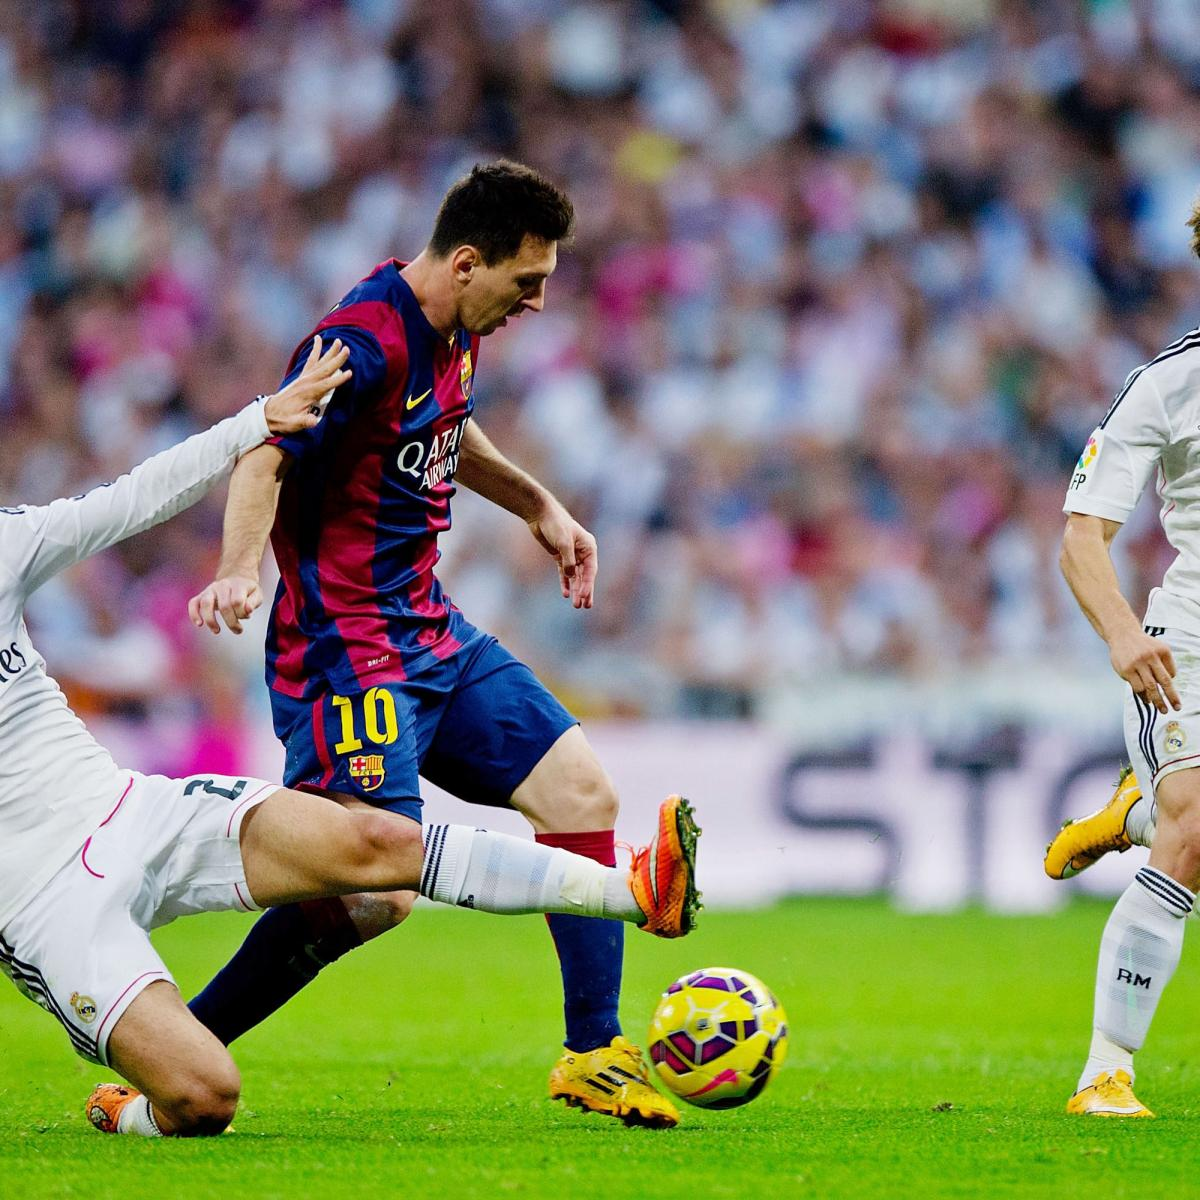 Barcelona Vs Real Madrid Records And Head To Head Ahead Of 2015 Clasico Bleacher Report Latest News Videos And Highlights